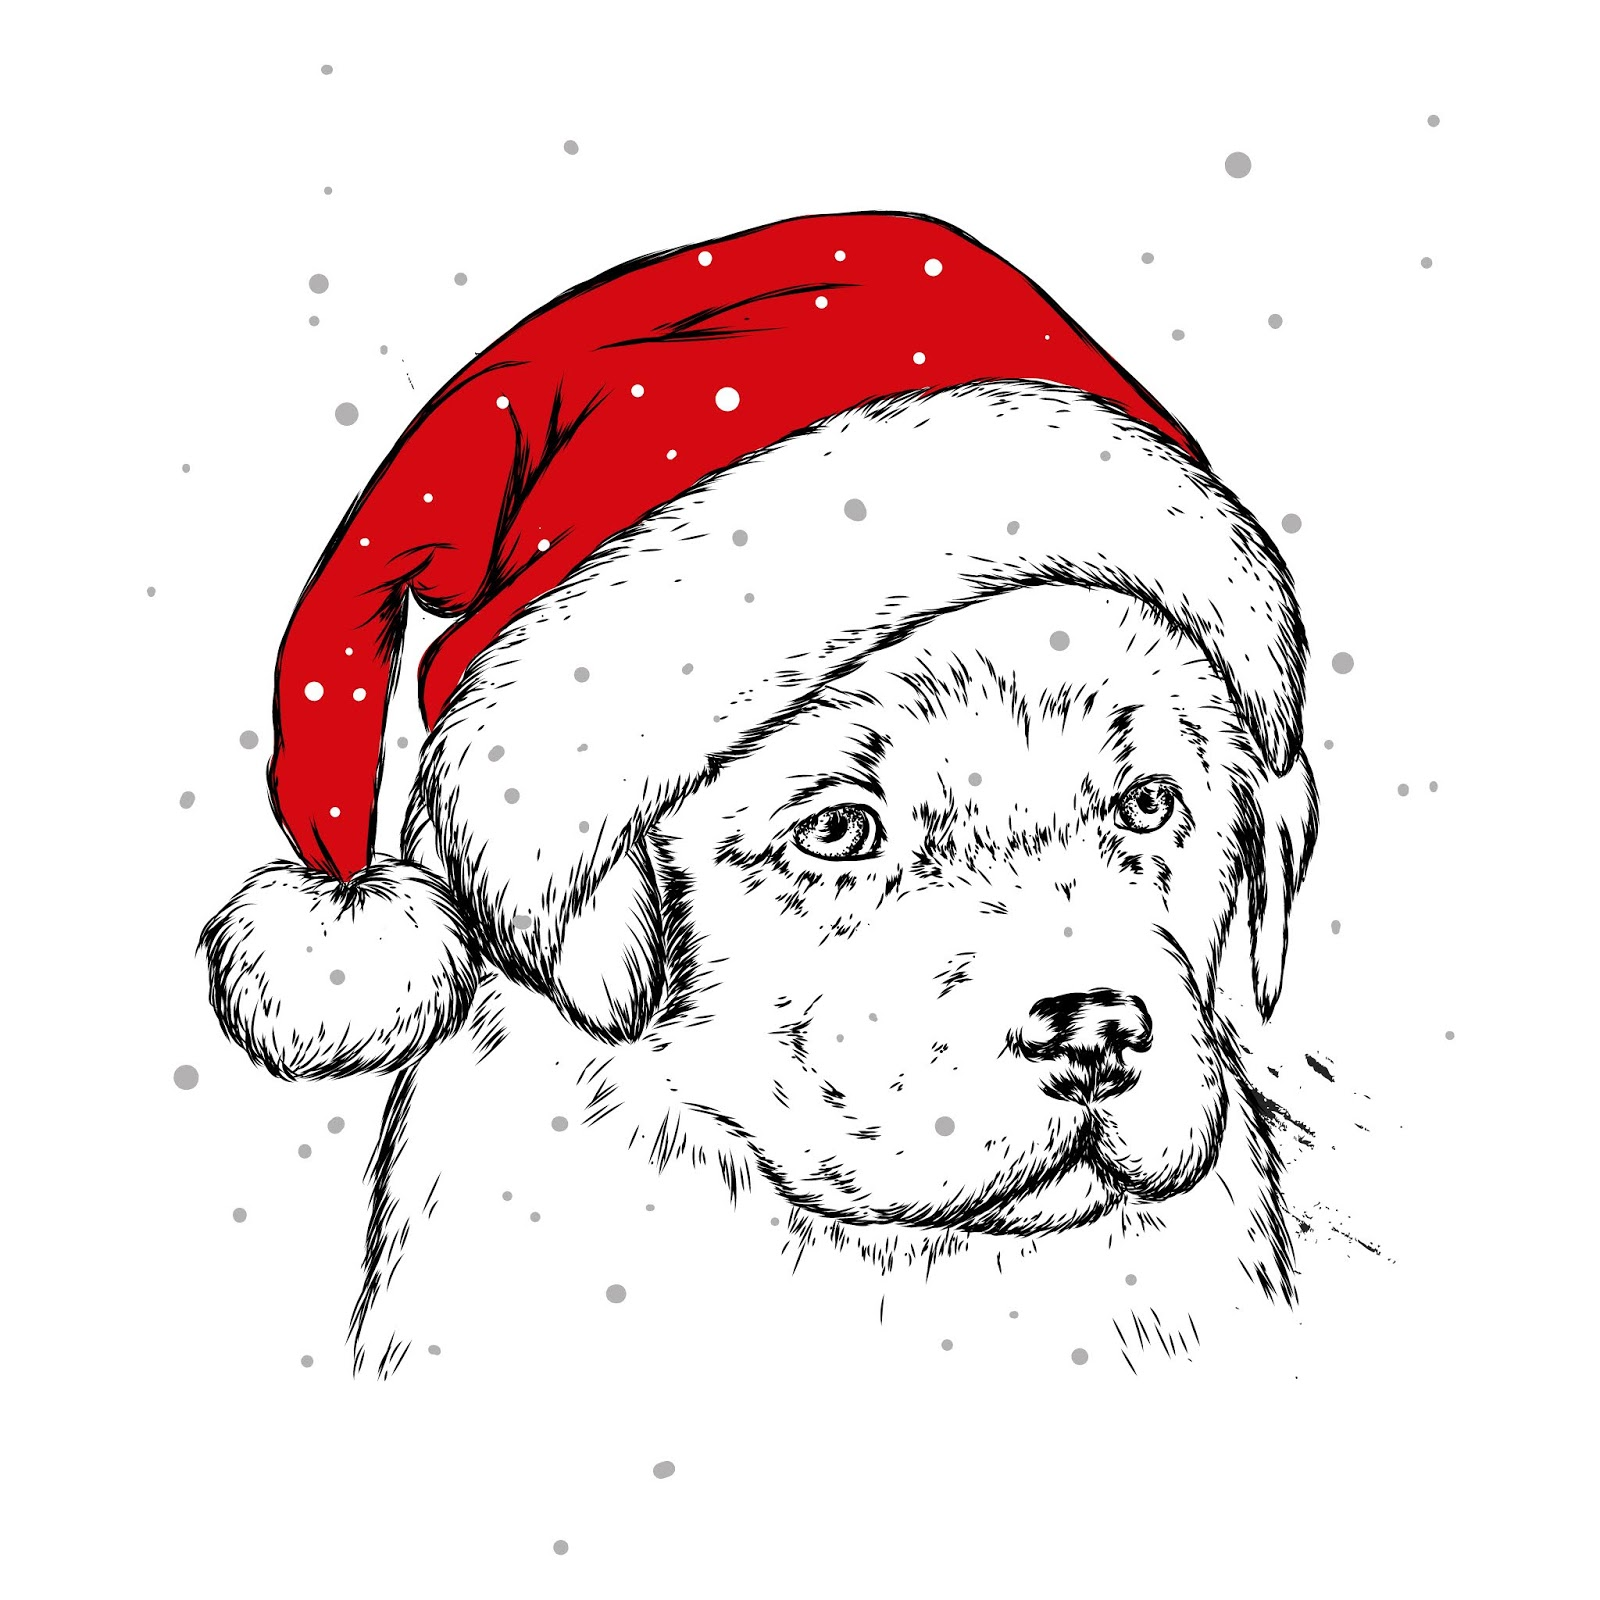 Puppy Christmas Hat Santa Claus Dog New Year Christmas Winter Holidays Vector Illustration Postcard Print Clothes Free Download Vector CDR, AI, EPS and PNG Formats